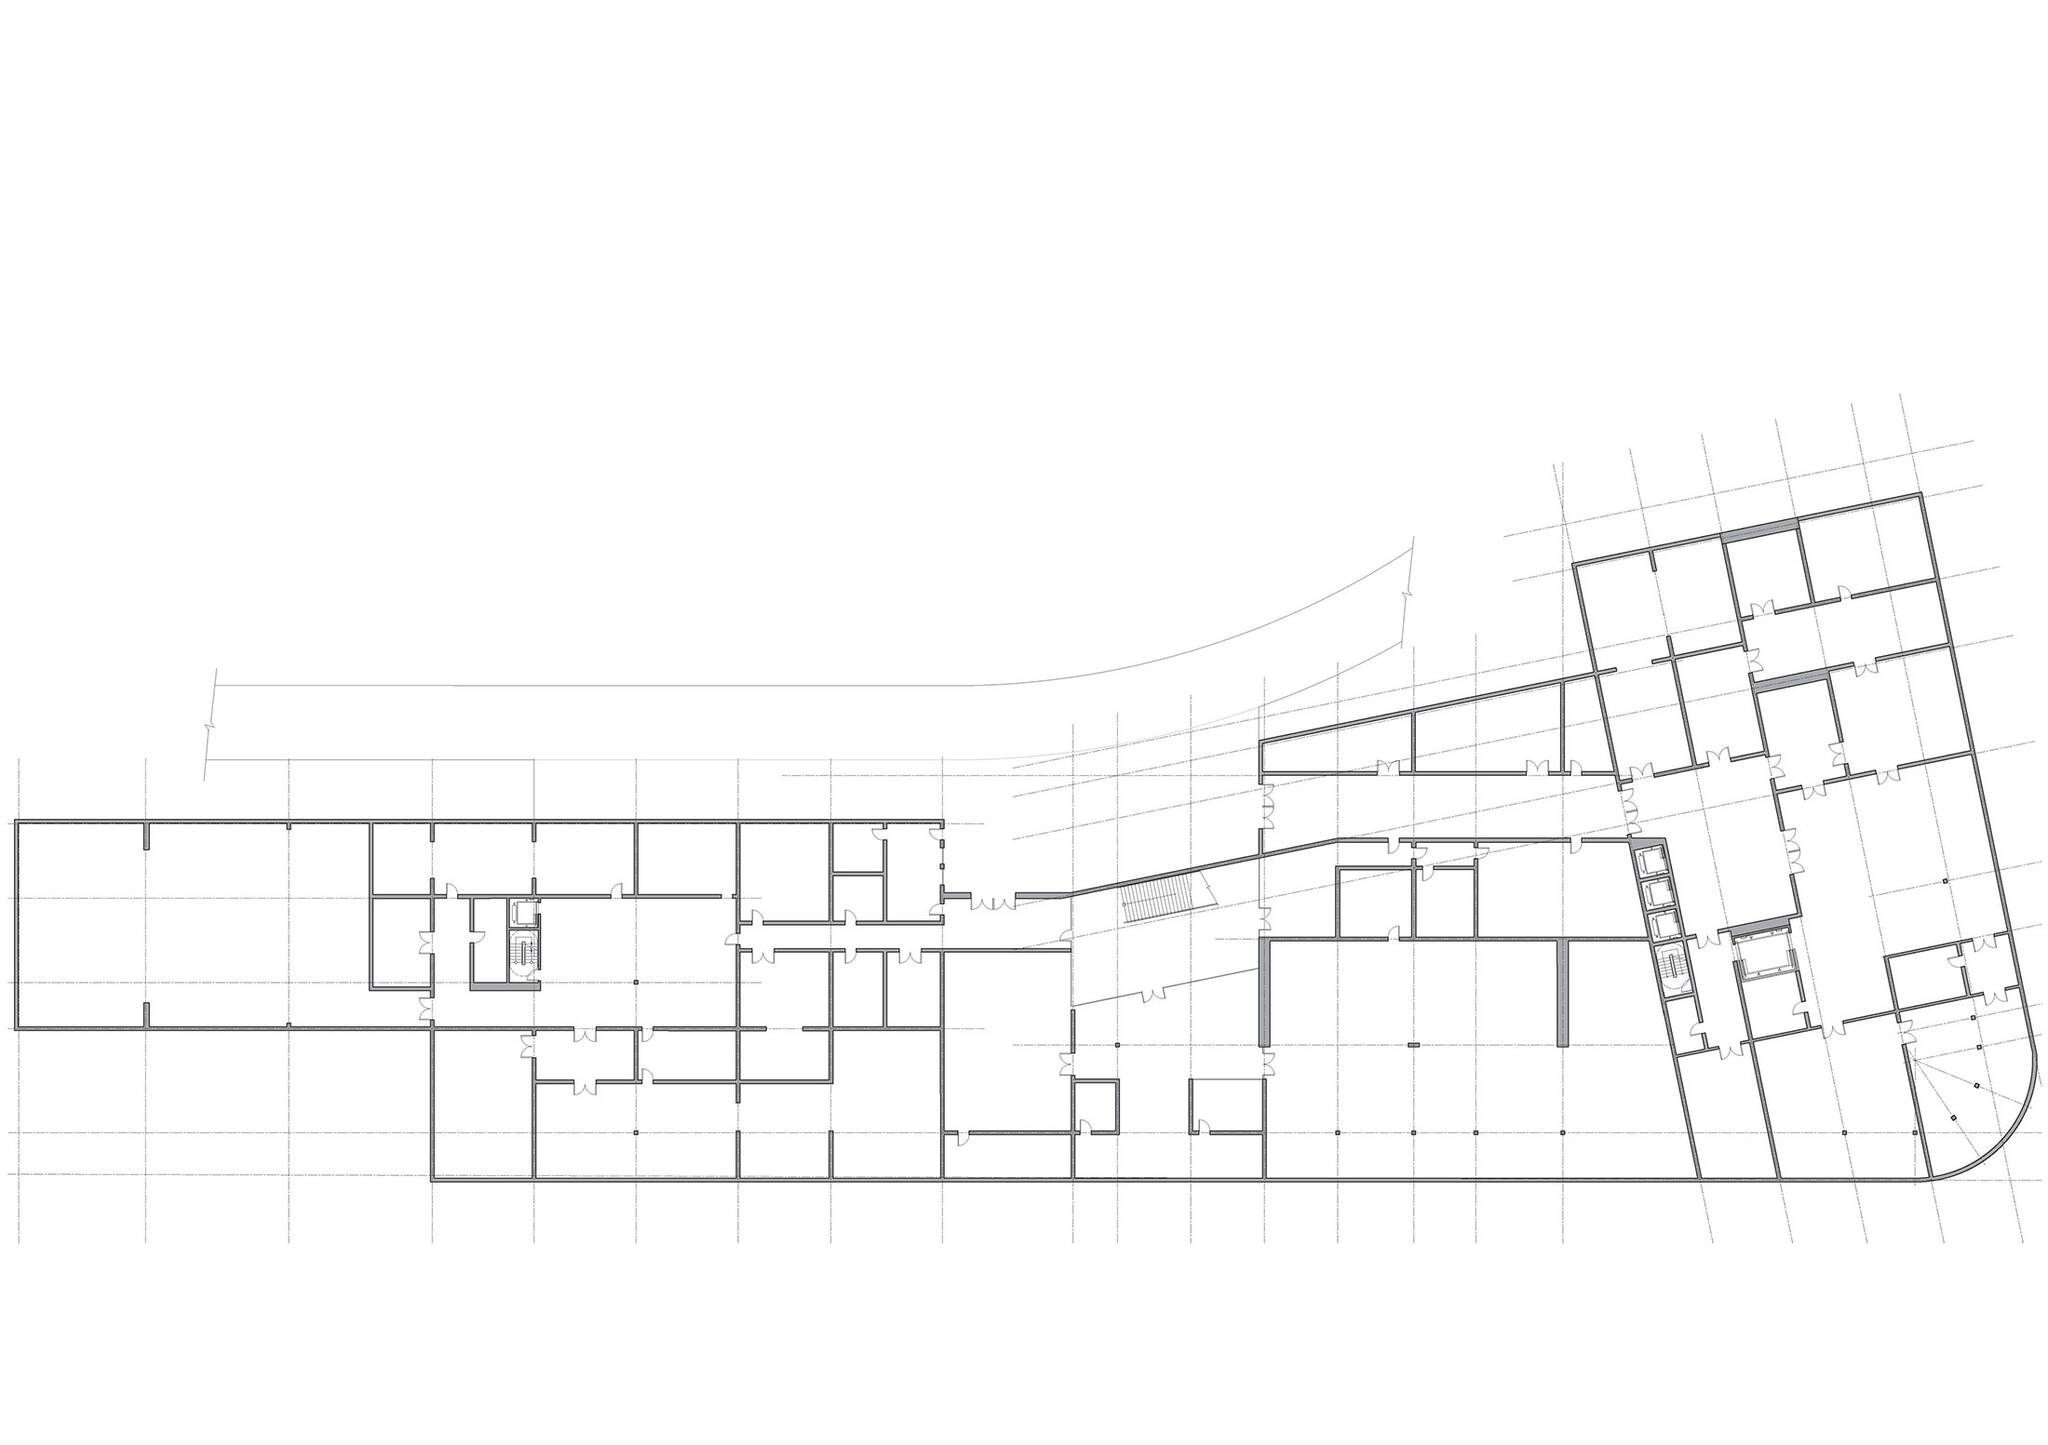 Cellar floor plan of the Museum of Etnography project located in Budapest, Hungary designed by the architecture studio Danny Forster & Architecture